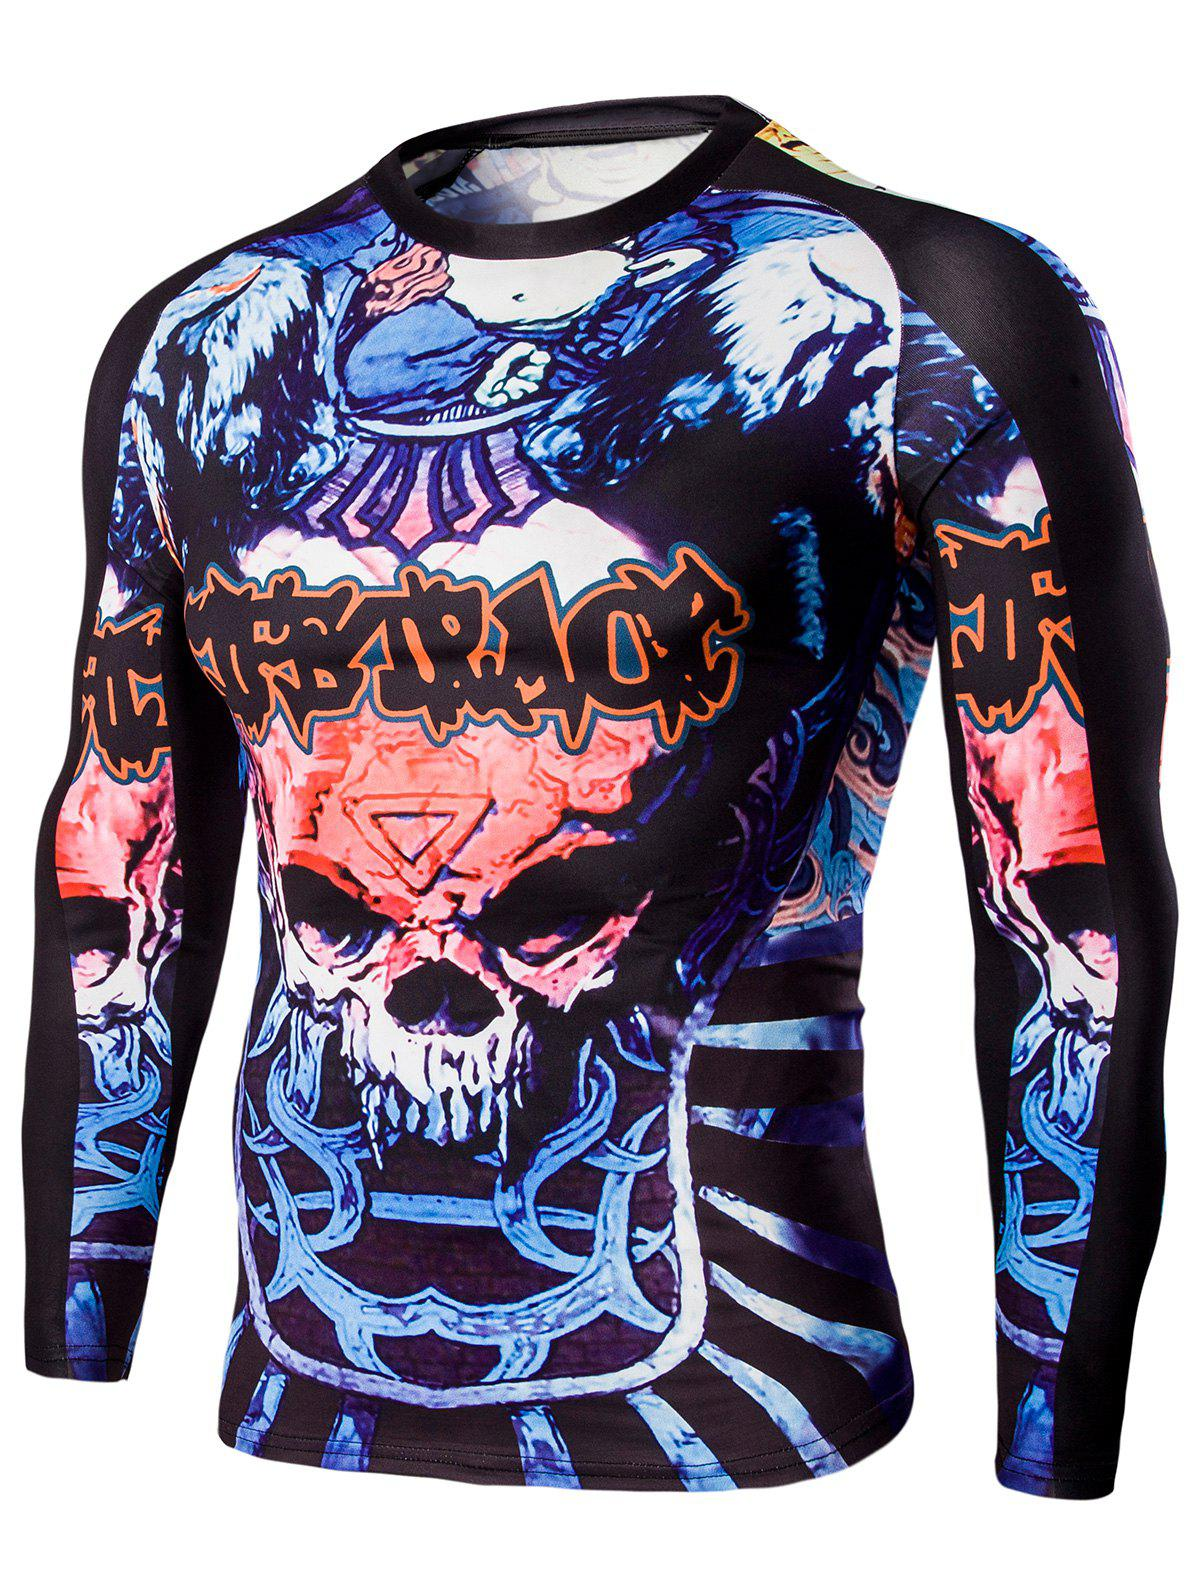 Men's Round Neck Skull and Words Print Long Sleeves T-Shirt